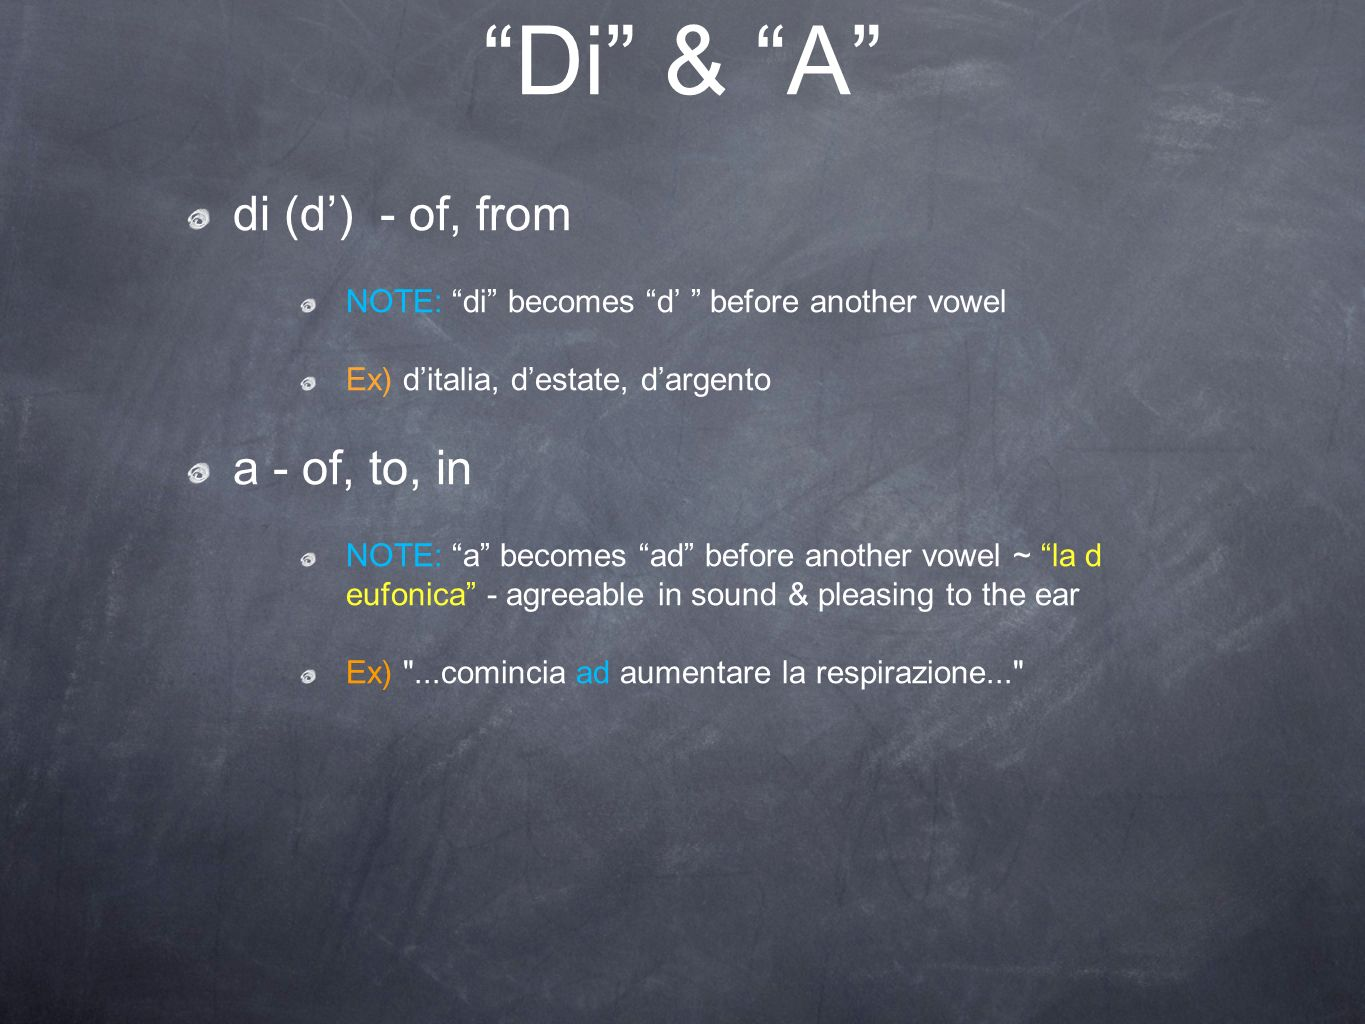 Di & A di (d') - of, from a - of, to, in